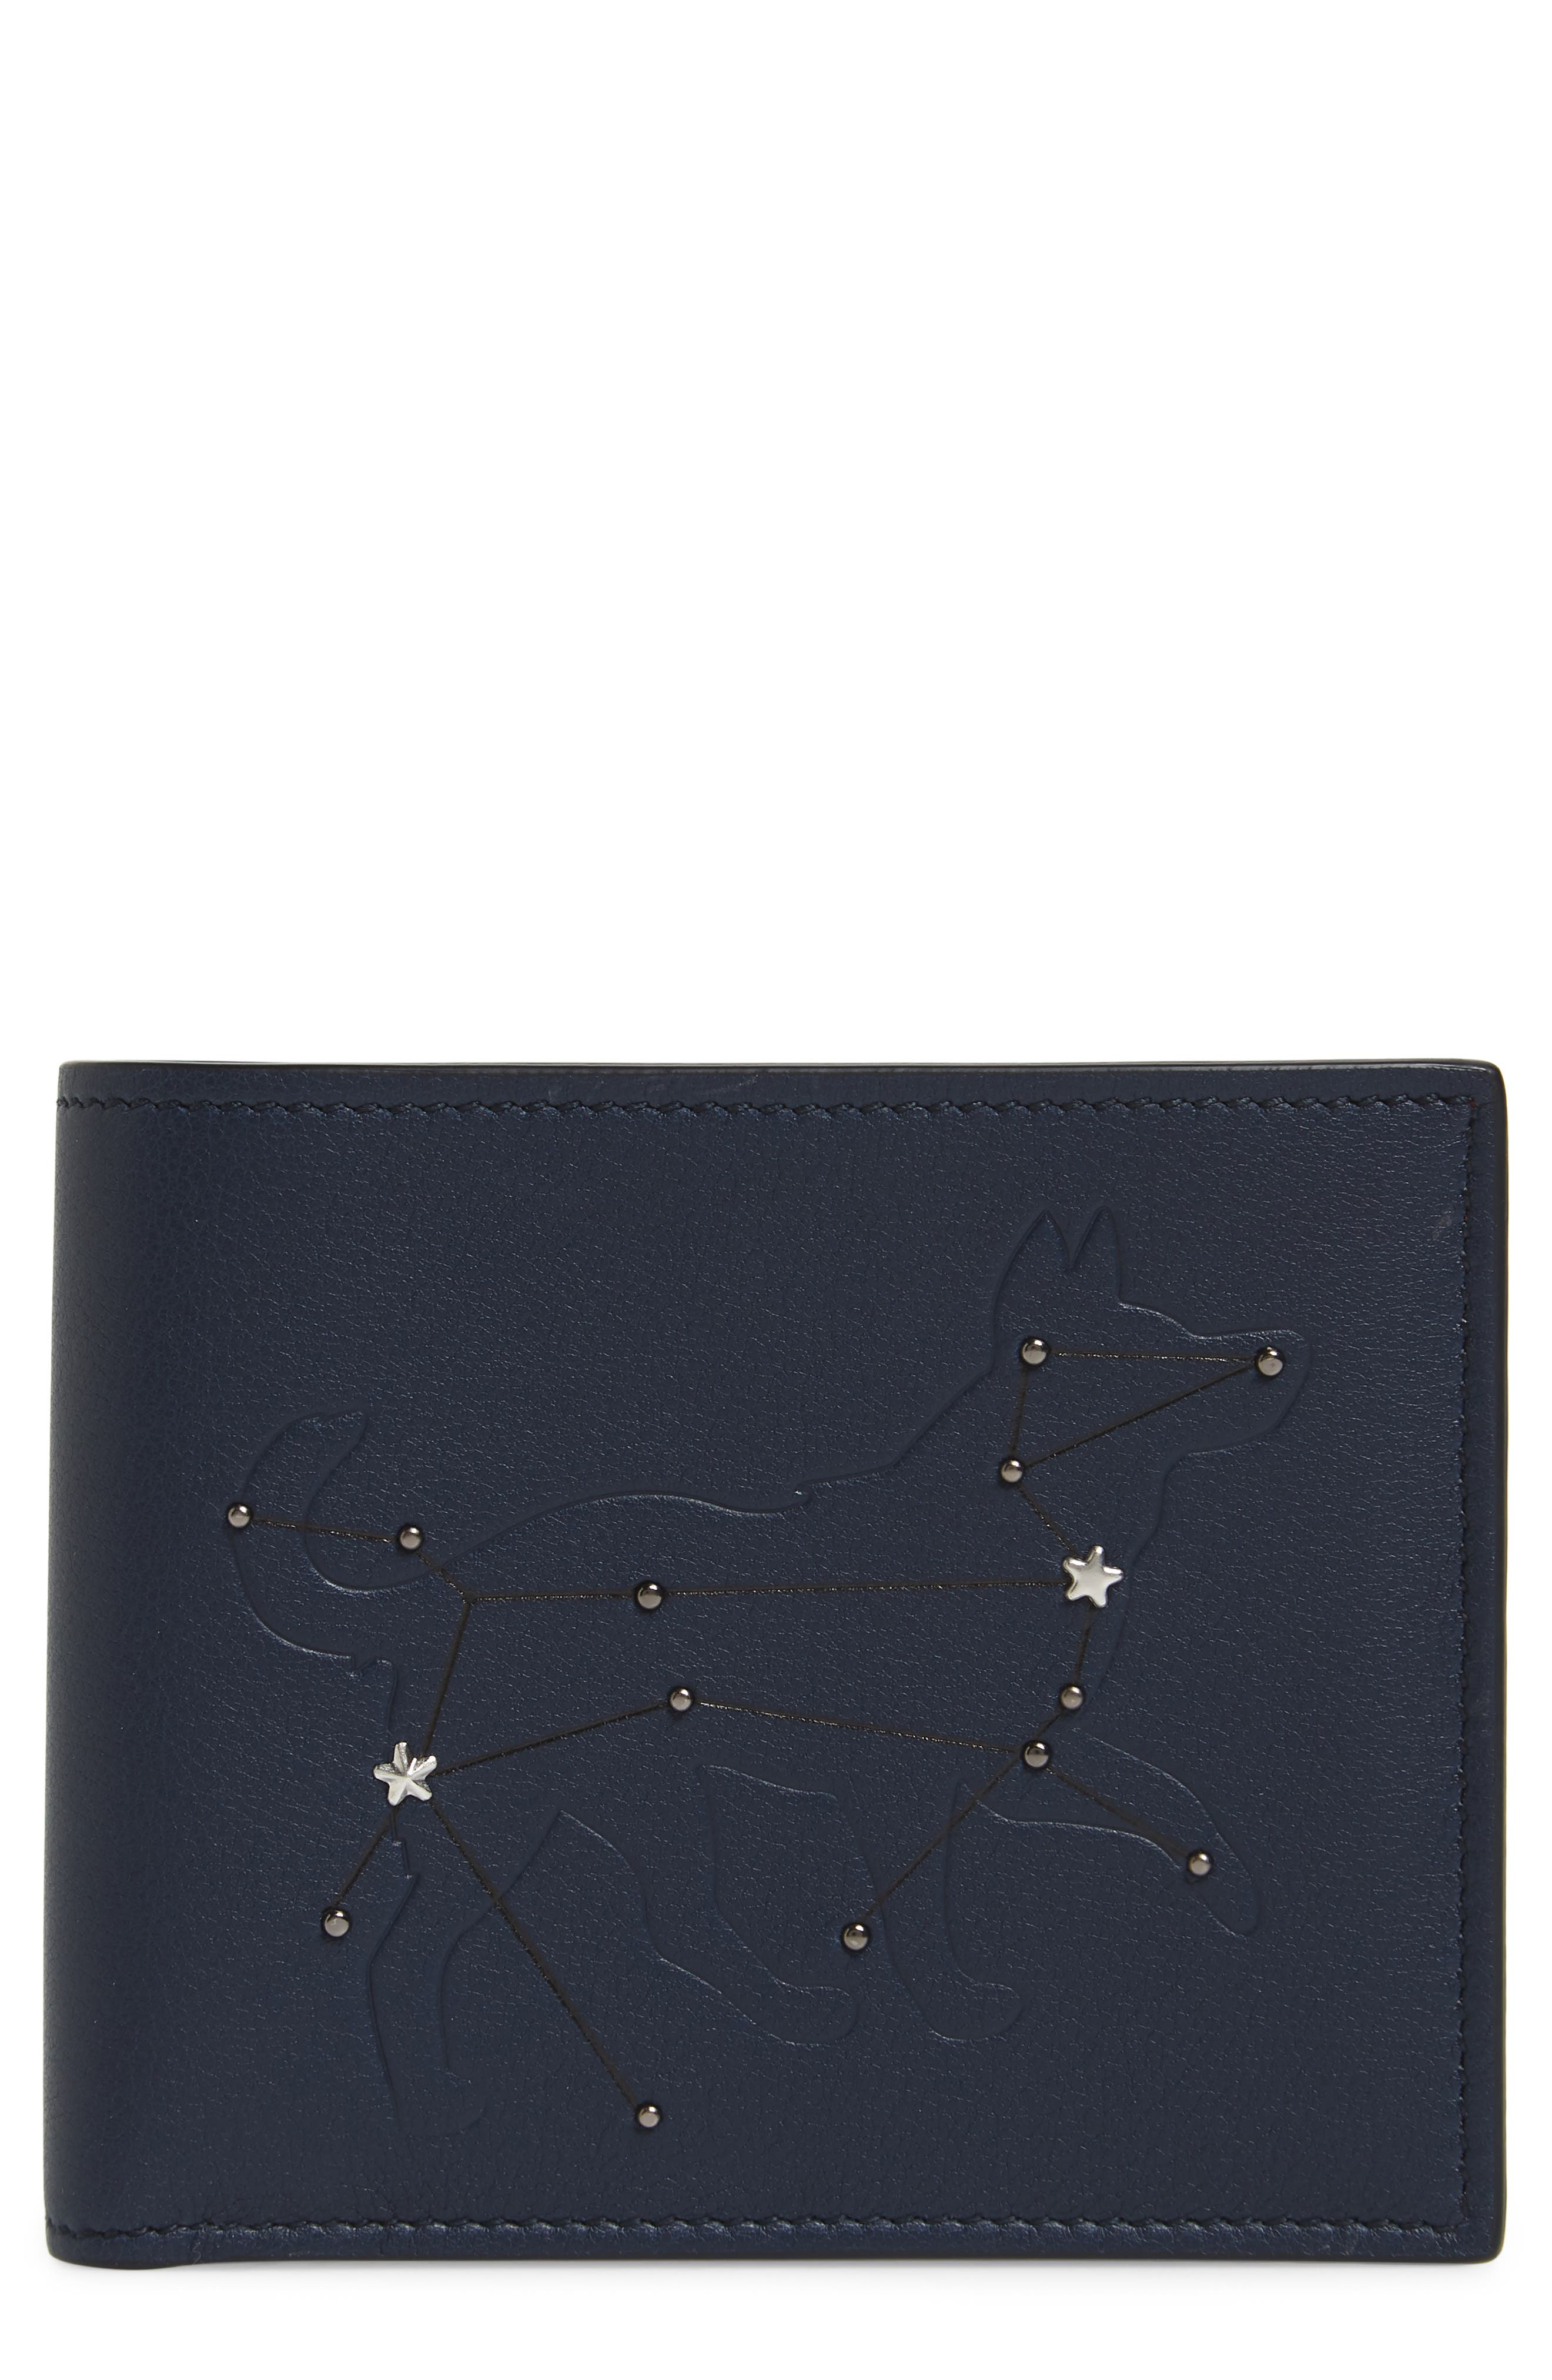 Carne Chinese New Year Studded Leather Wallet,                             Main thumbnail 1, color,                             Navy